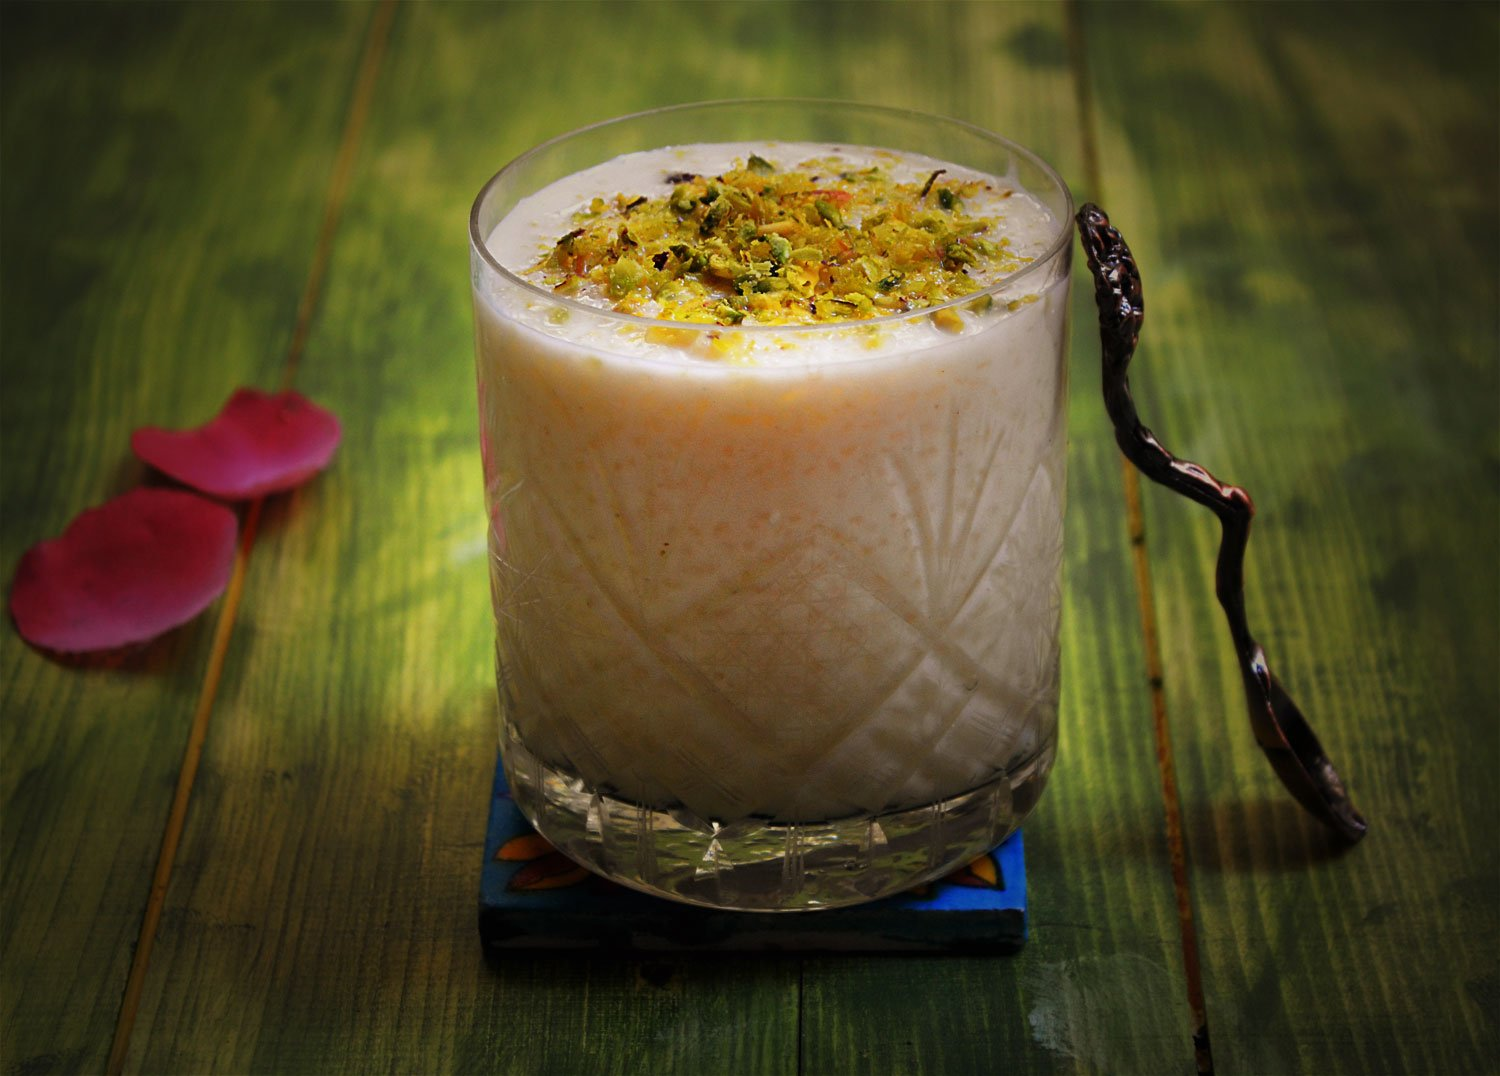 Lebanese Style Riz B Haleeb Recipe - Rice Pudding With Pistachios